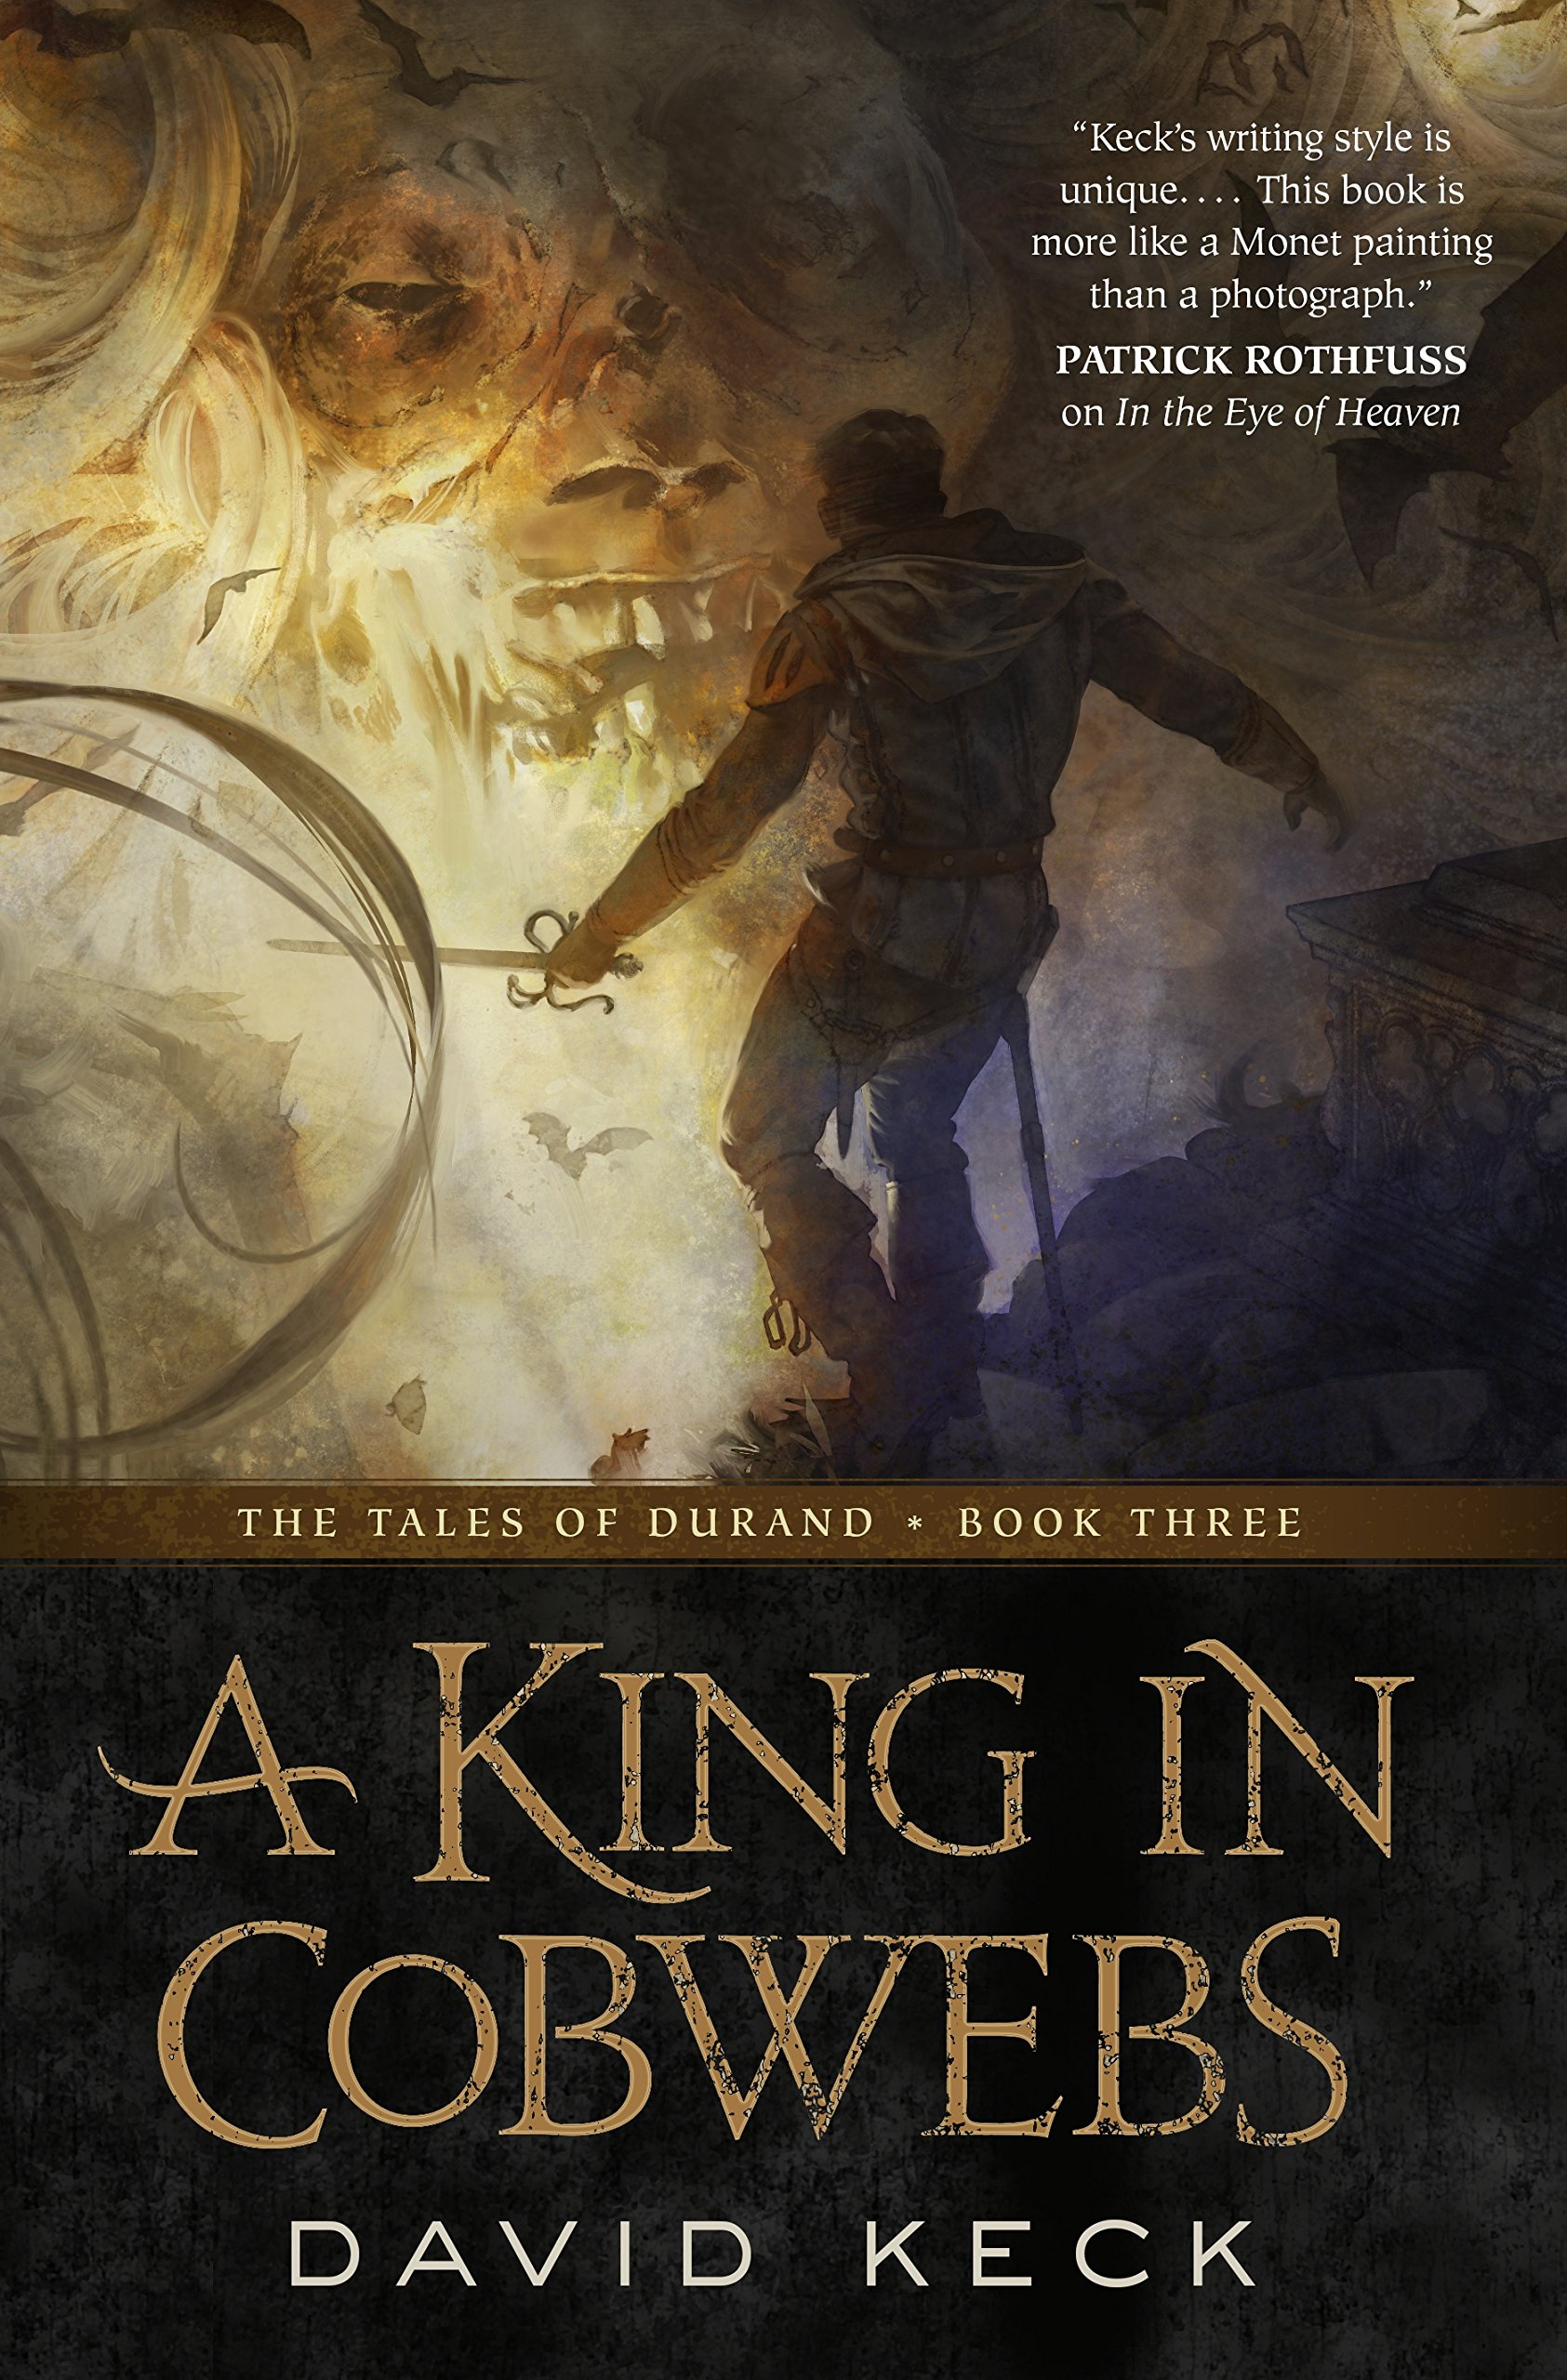 David Keck: Five Things I Learned Writing A King in Cobwebs